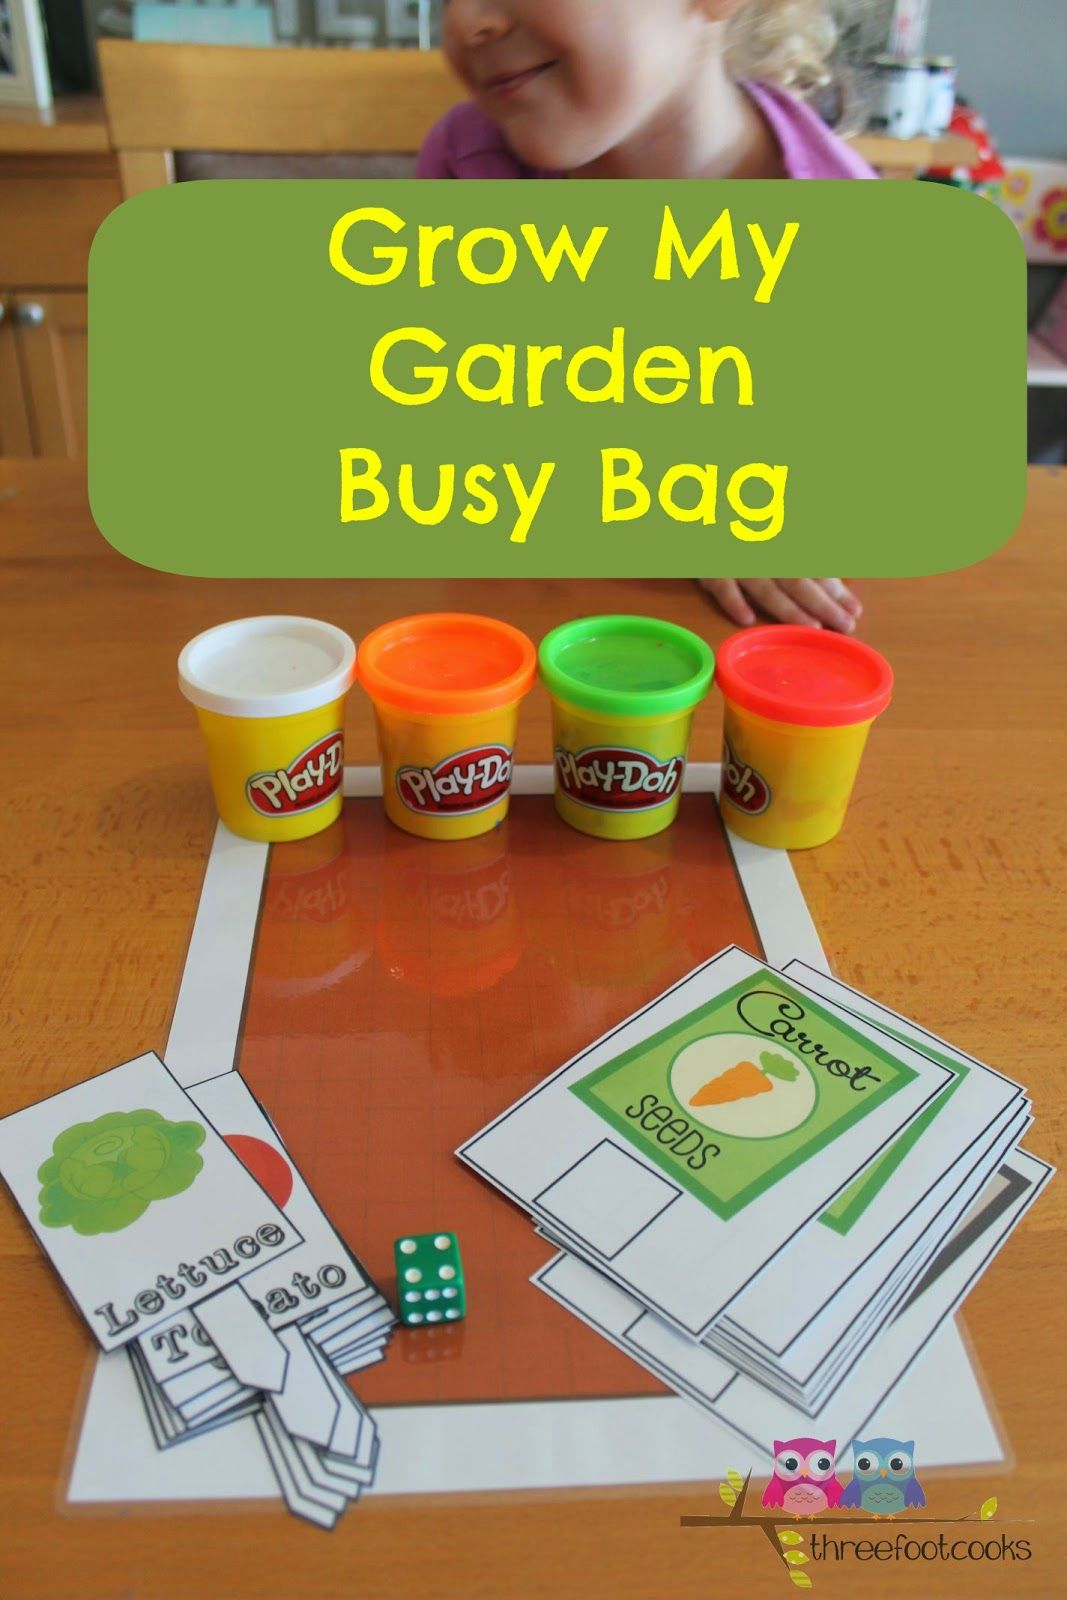 Grow My Garden Busy Bag